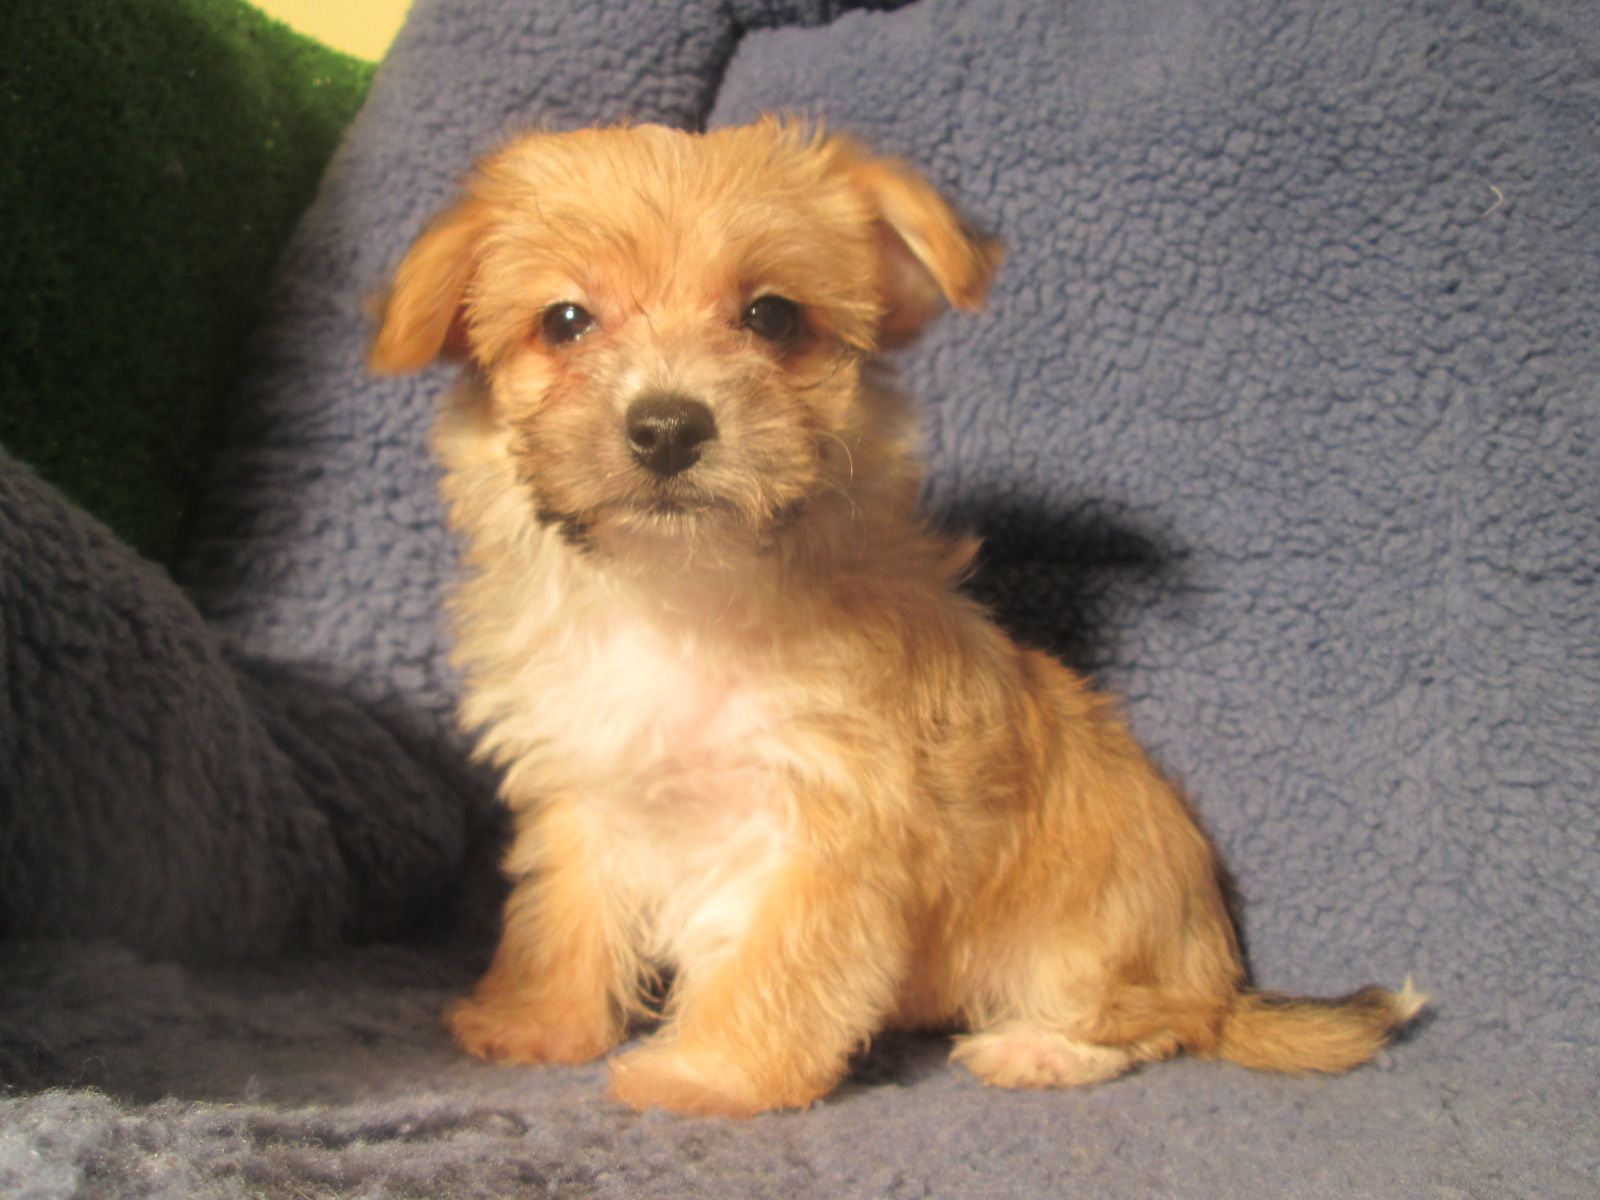 Adorable Yochon Puppies Available! (Yorkie x Bichon) *8